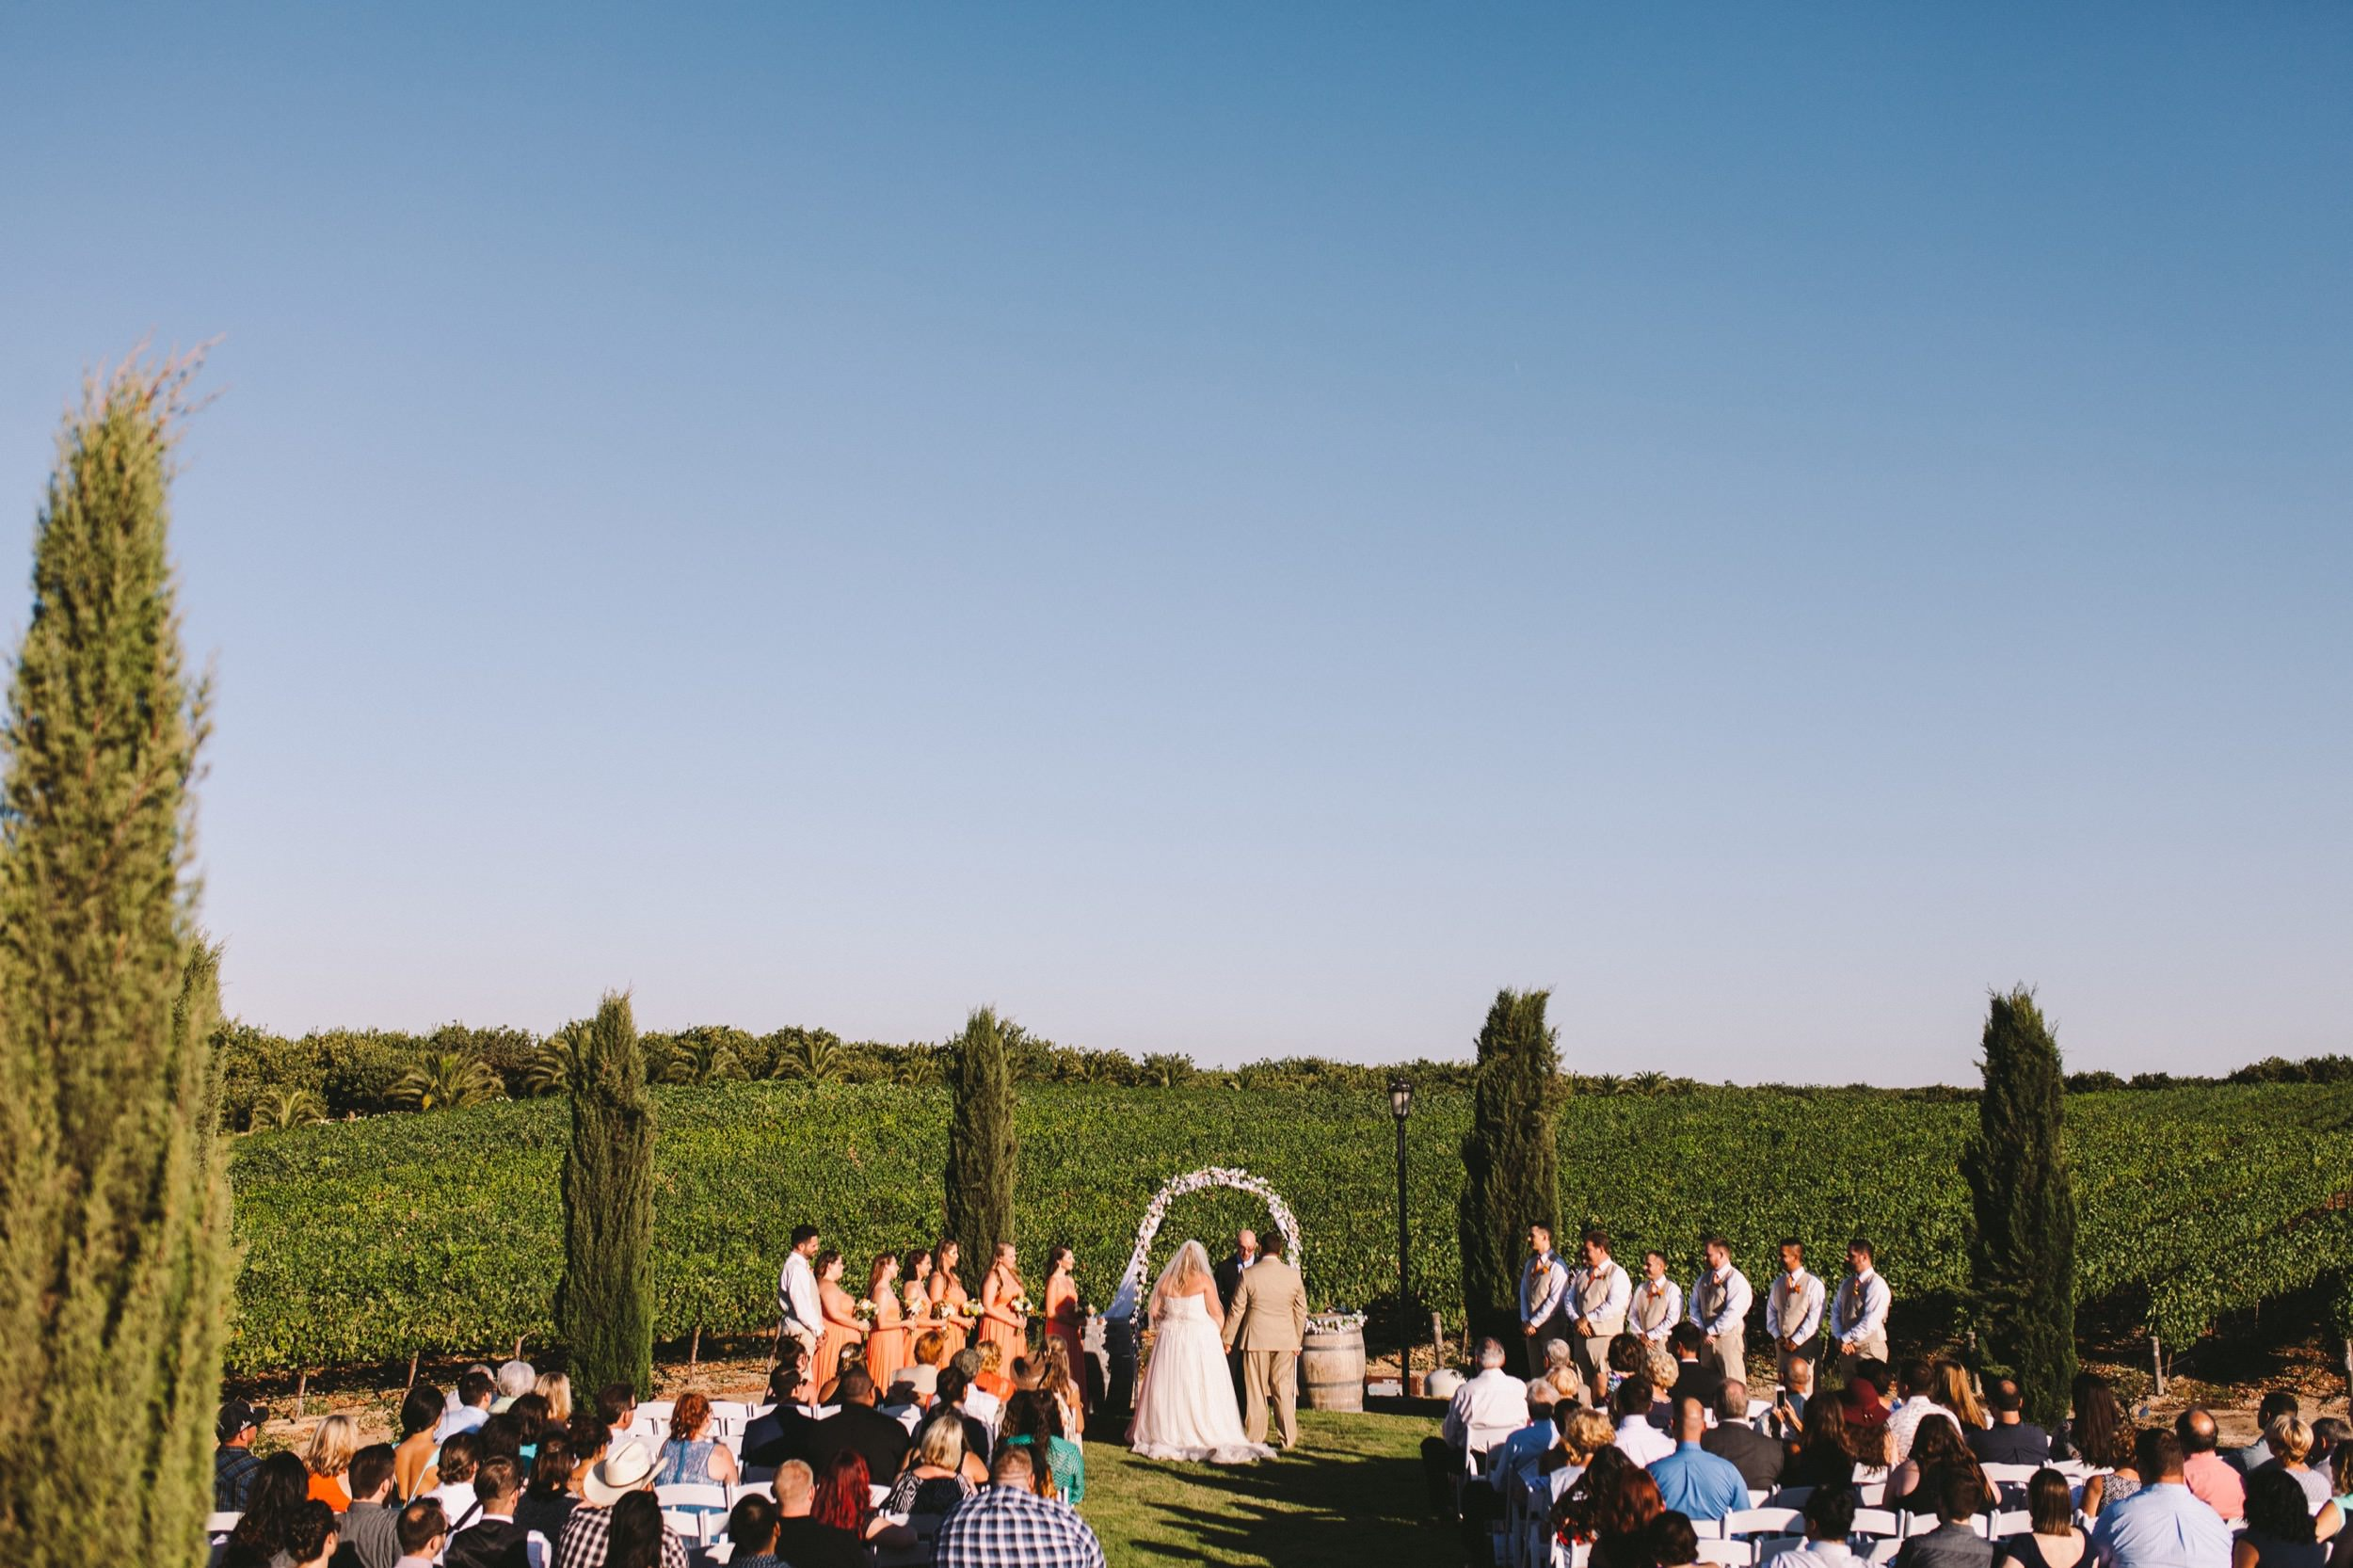 Toca Madera Winery Vineyard Wedding - Outdoor Ceremony